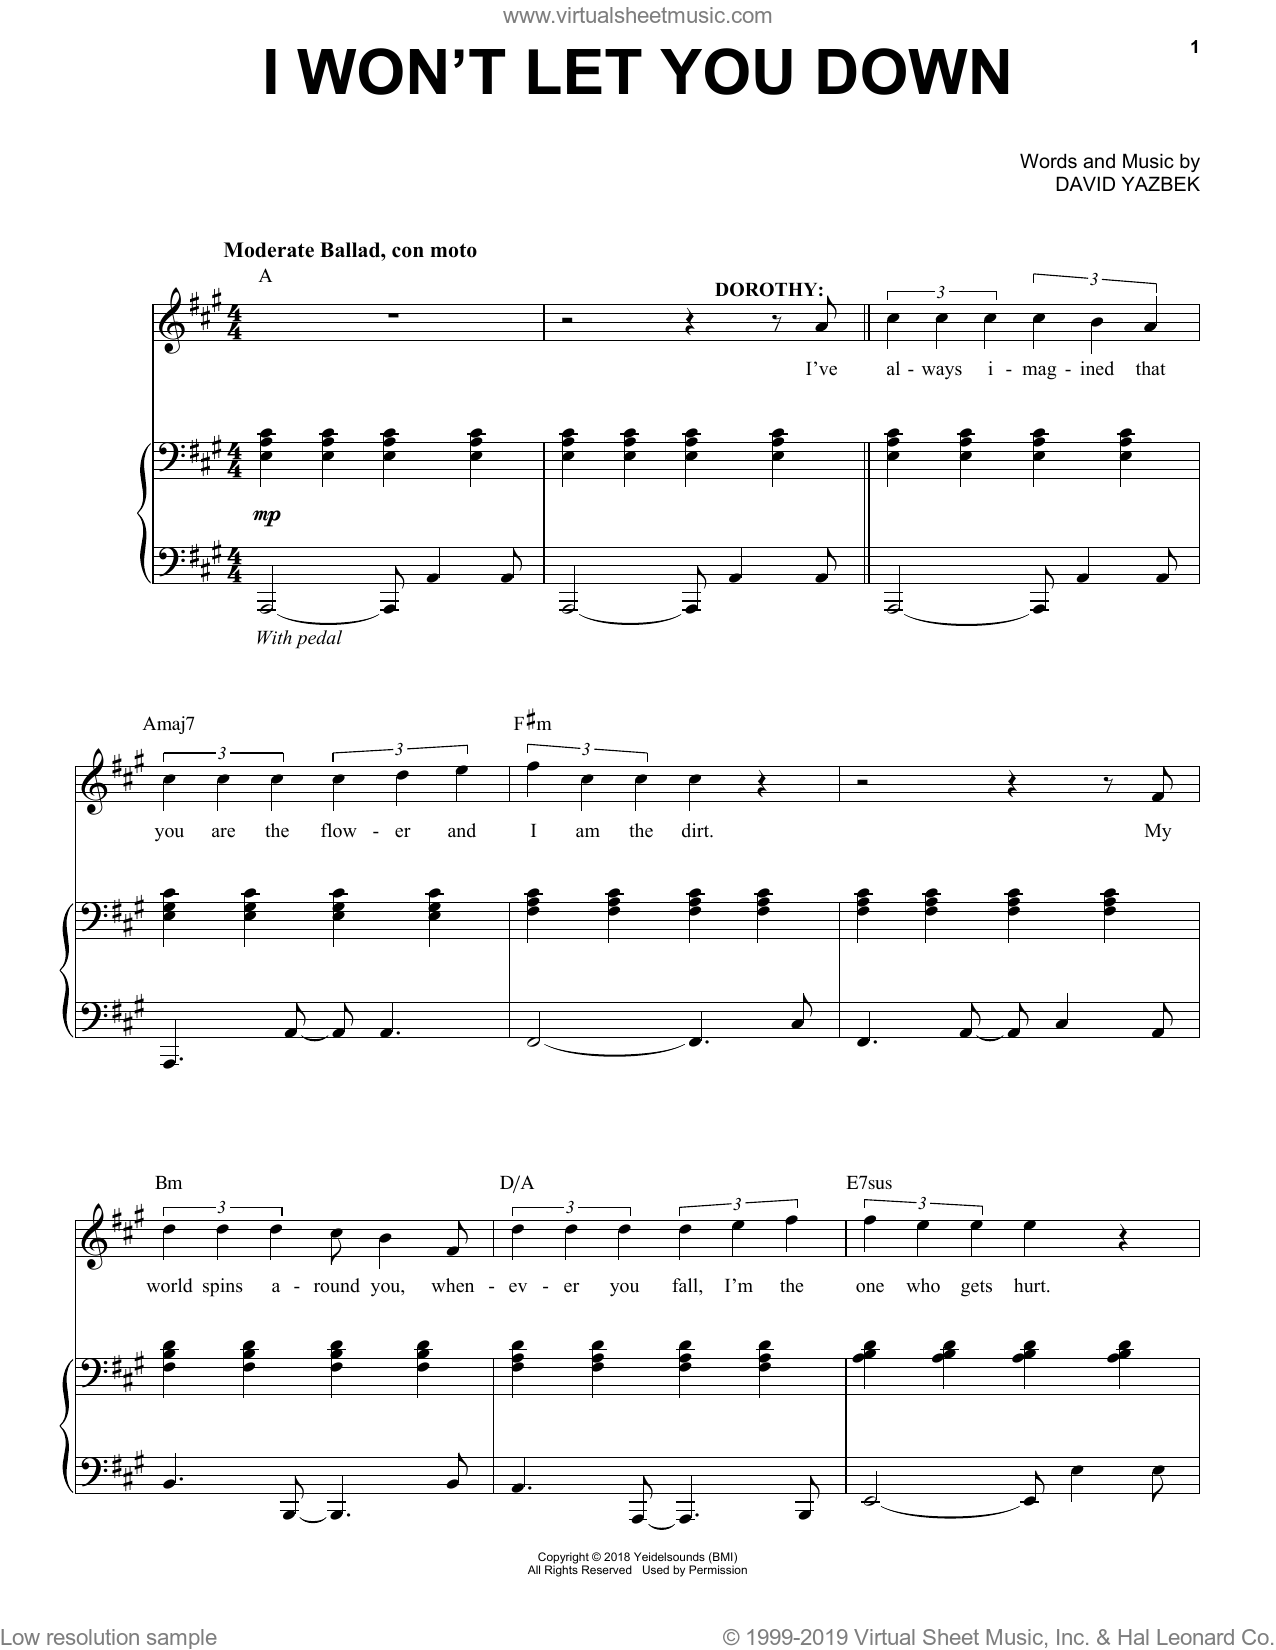 I Won't Let You Down (from the musical Tootsie) sheet music for voice and piano by David Yazbek, intermediate skill level